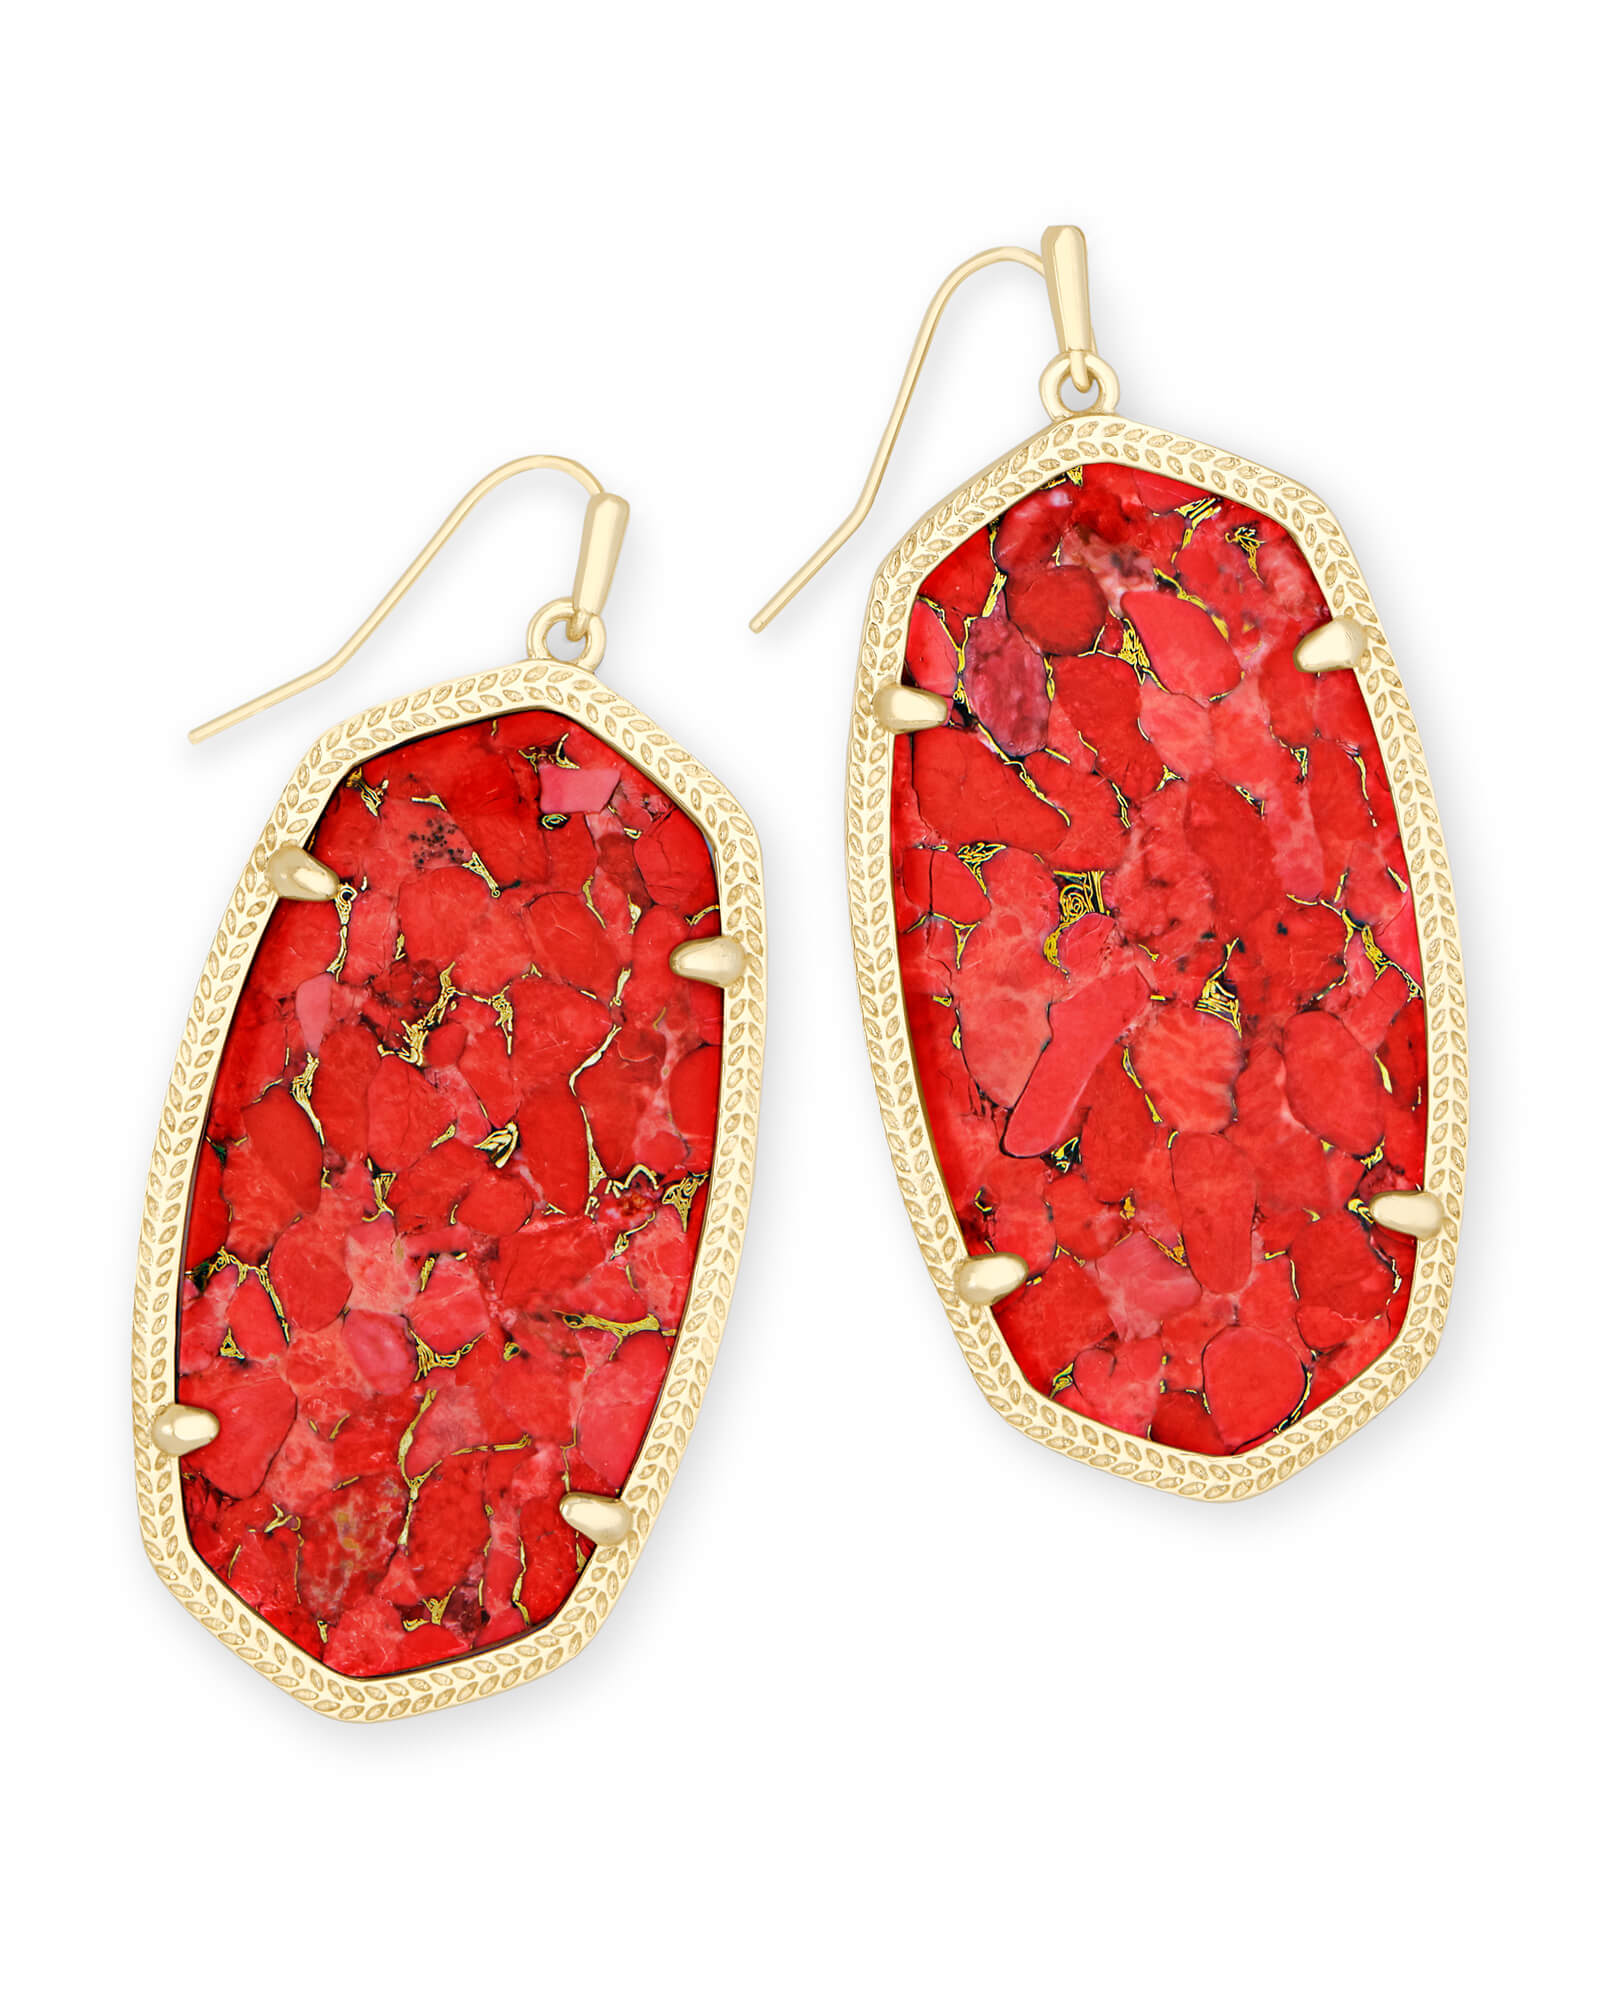 Danielle Gold Drop Earrings in Bronze Veined Red Magnesite